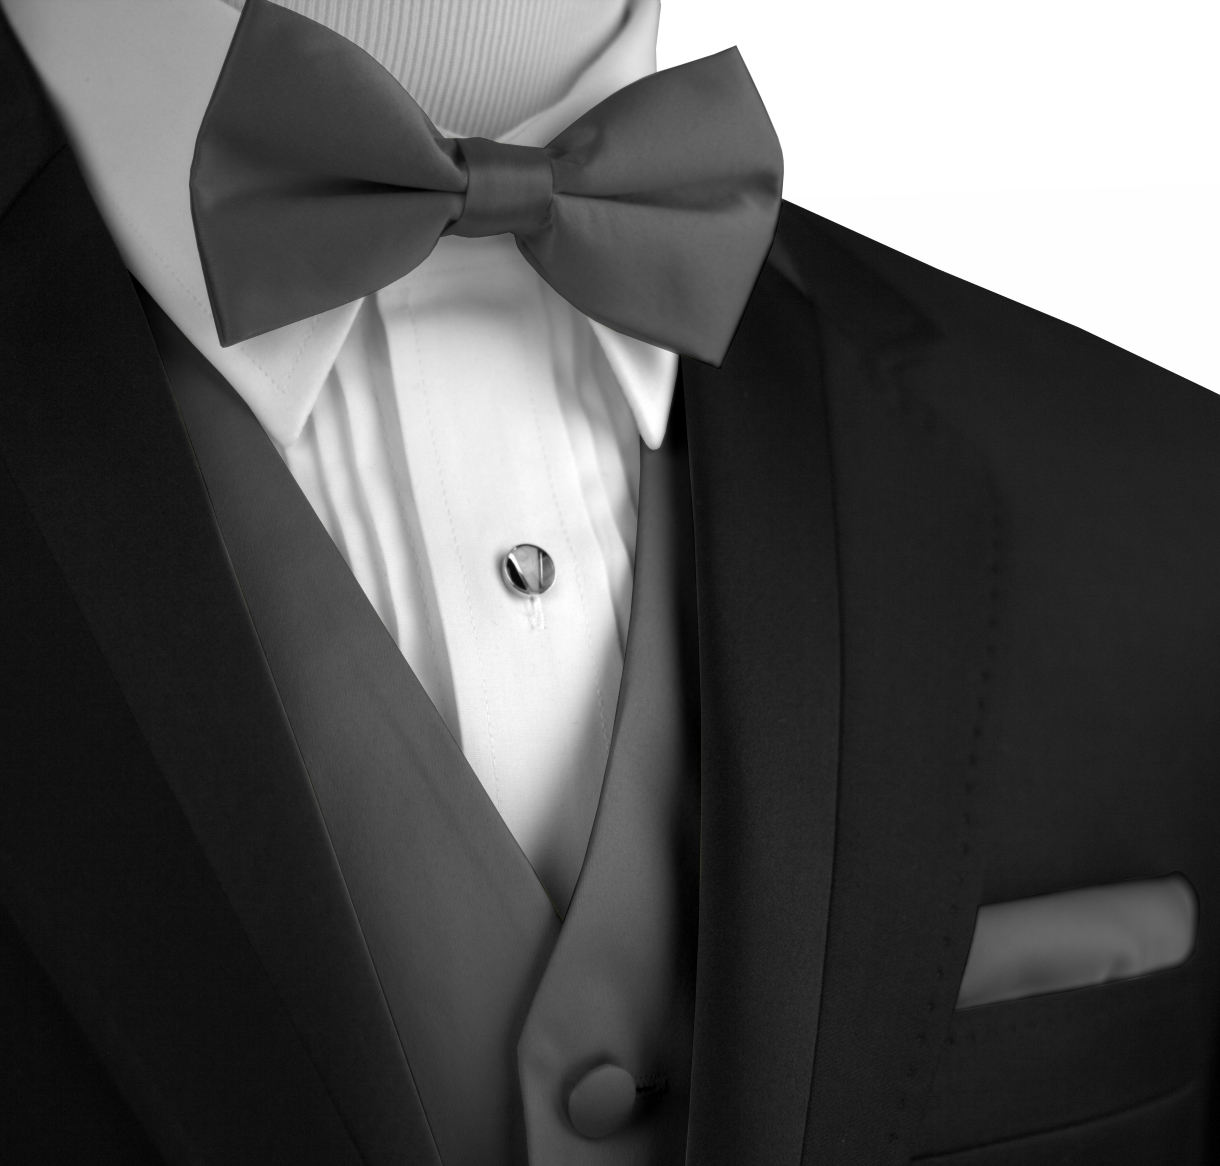 Italian Design, Men's Tuxedo Vest, Bow-Tie & Hankie Set in Charcoal